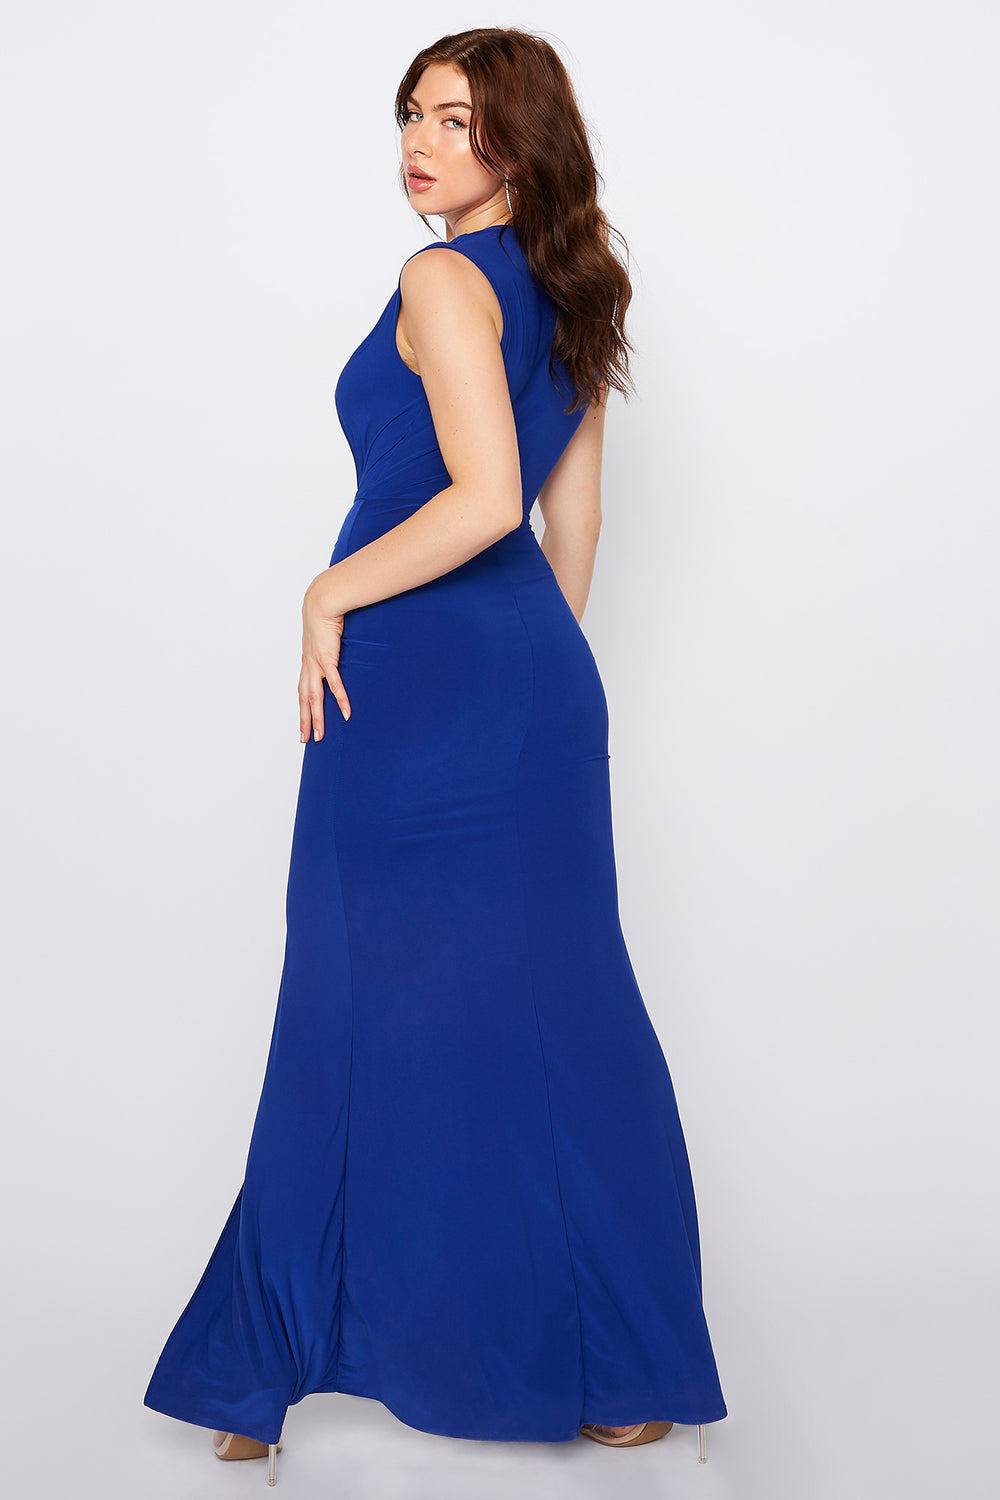 Plunging V-Neck Ruched Slit Maxi Dress Royal Blue